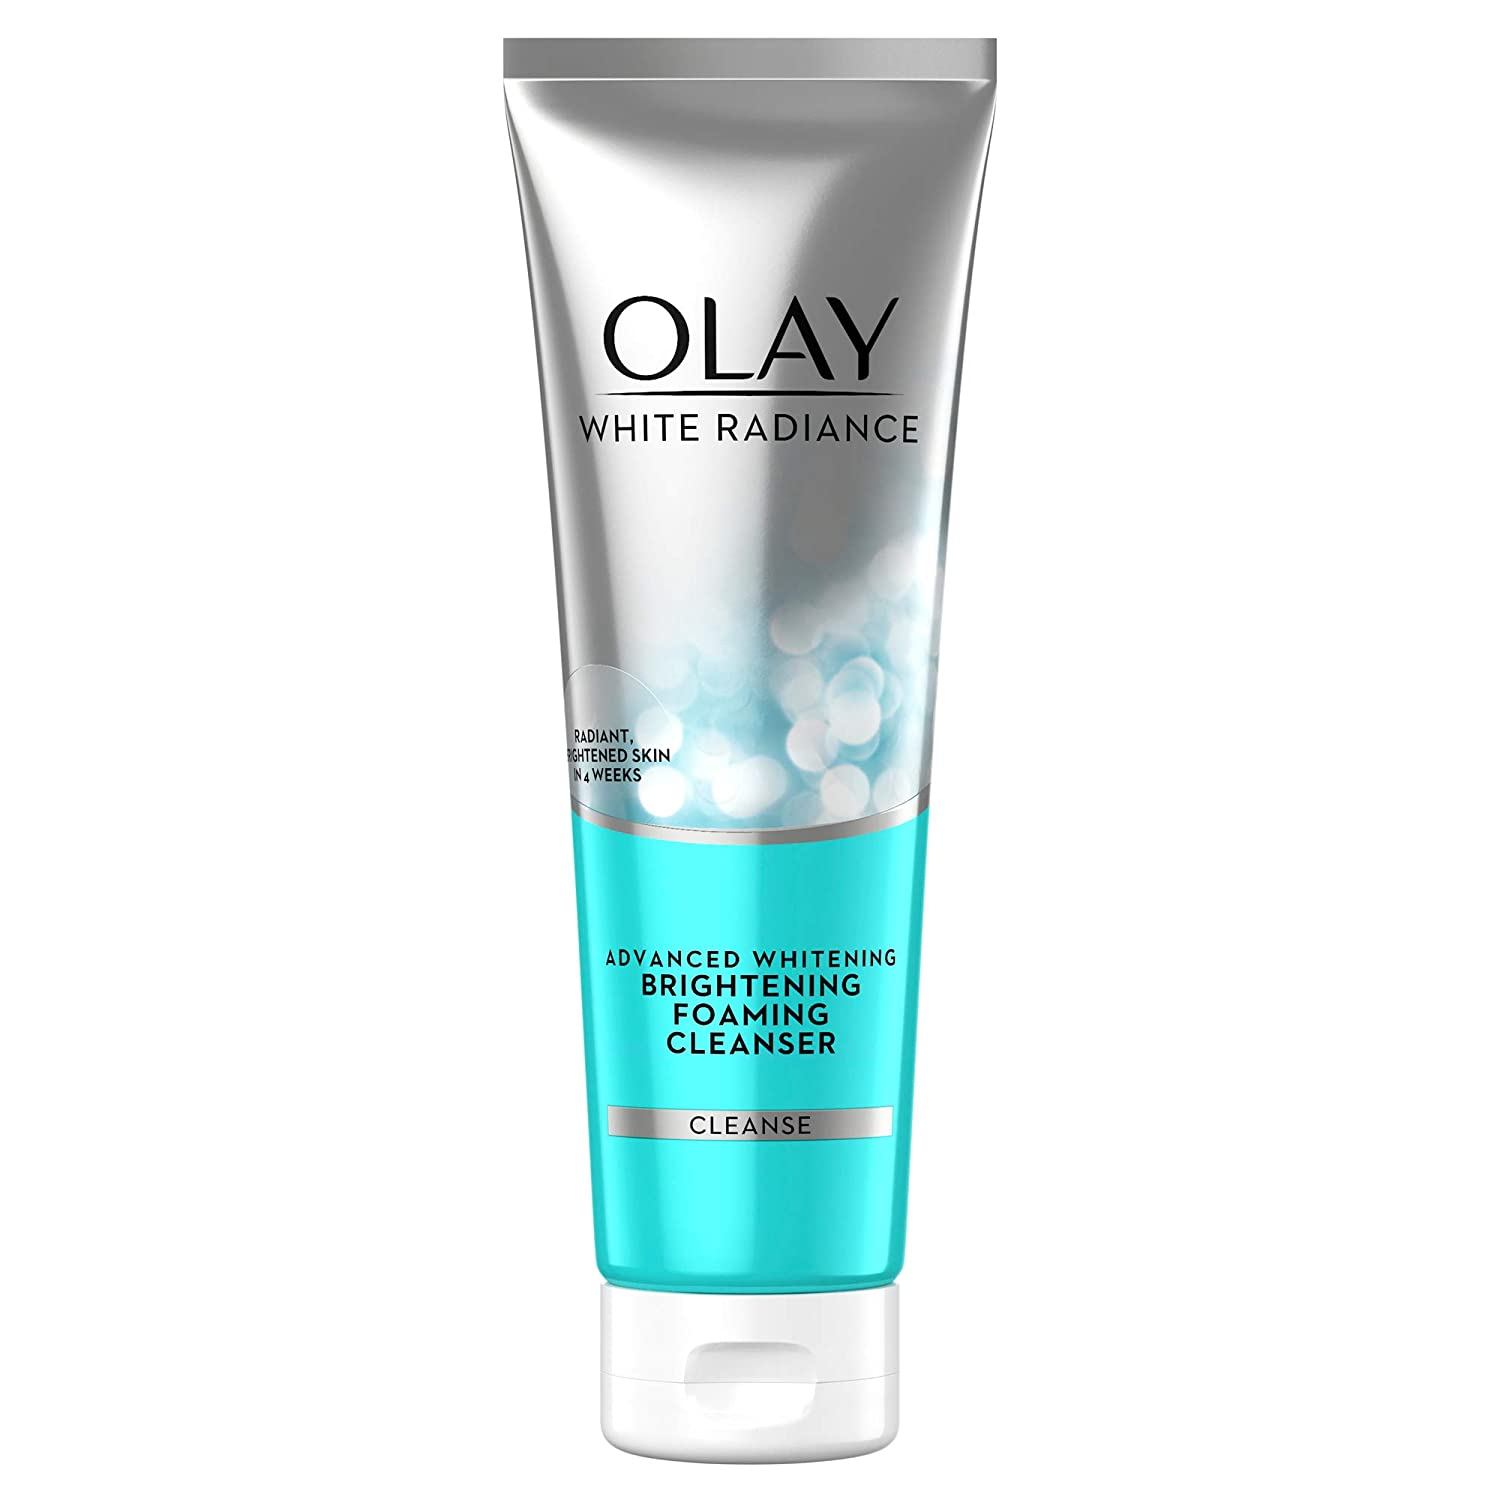 Olay Face Wash White Radiance Brightening Foaming Cleanser